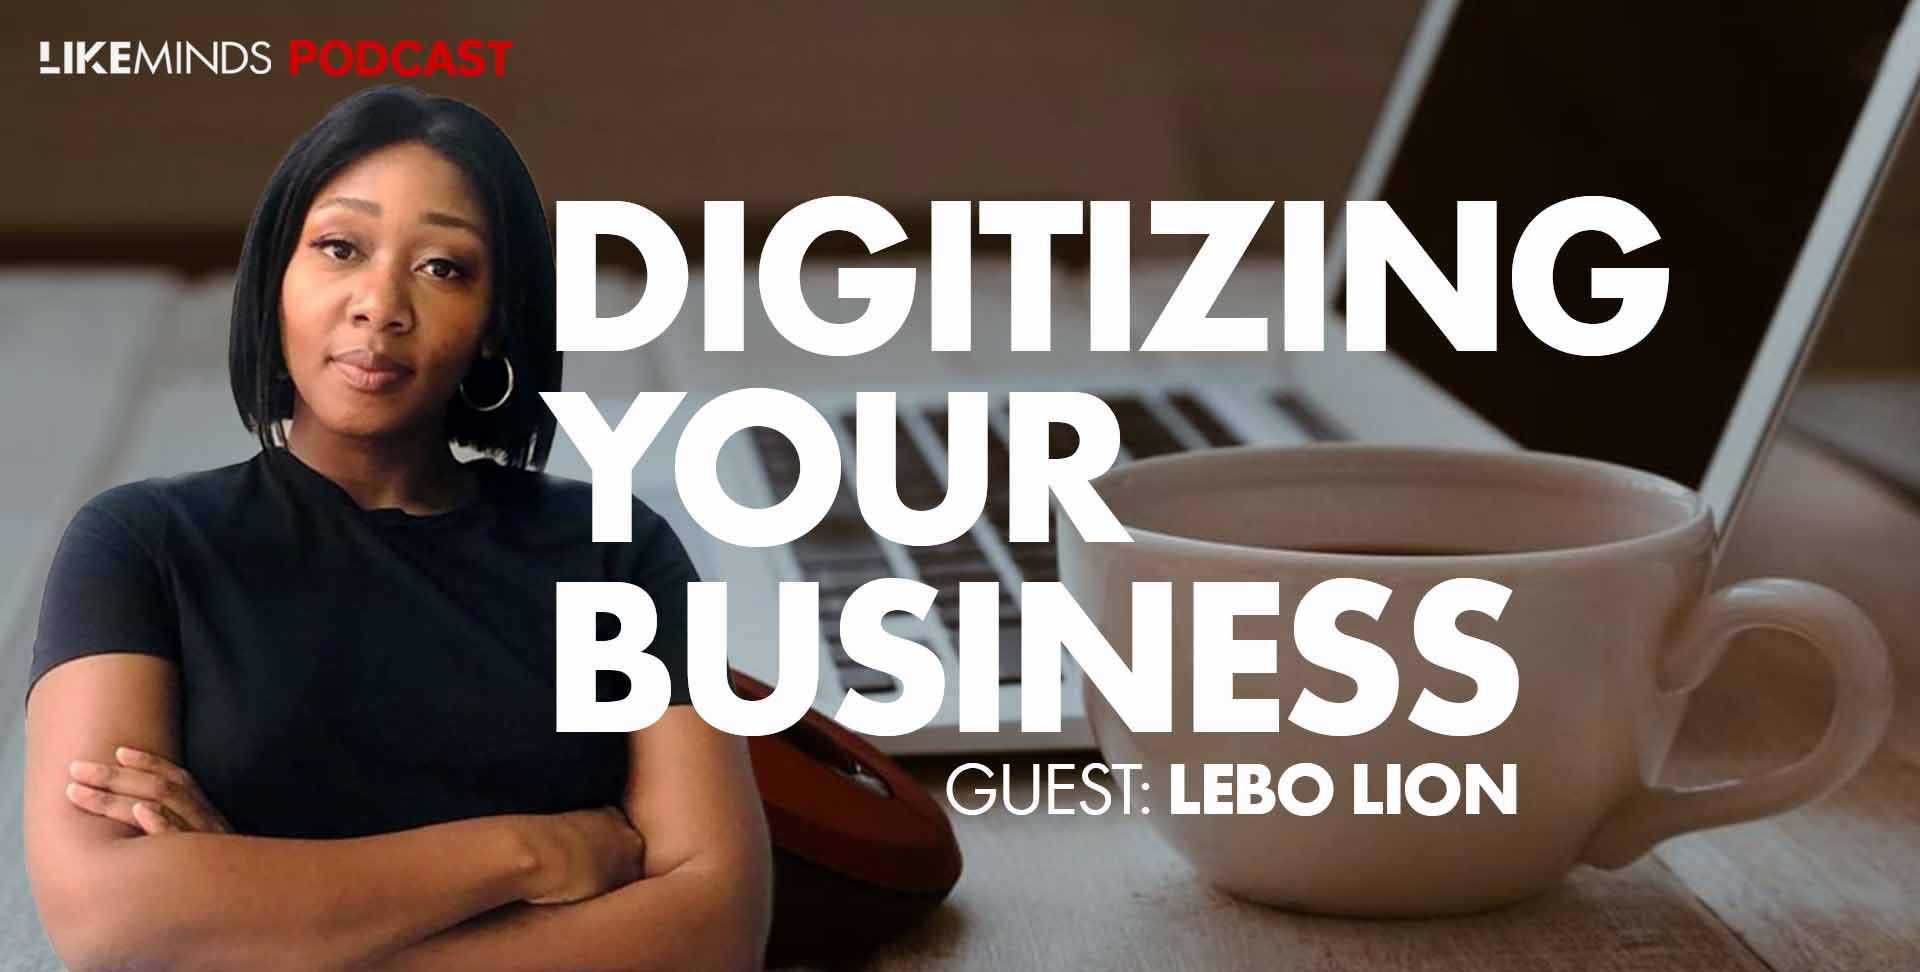 Lebo Lion on Likeminds podcasts